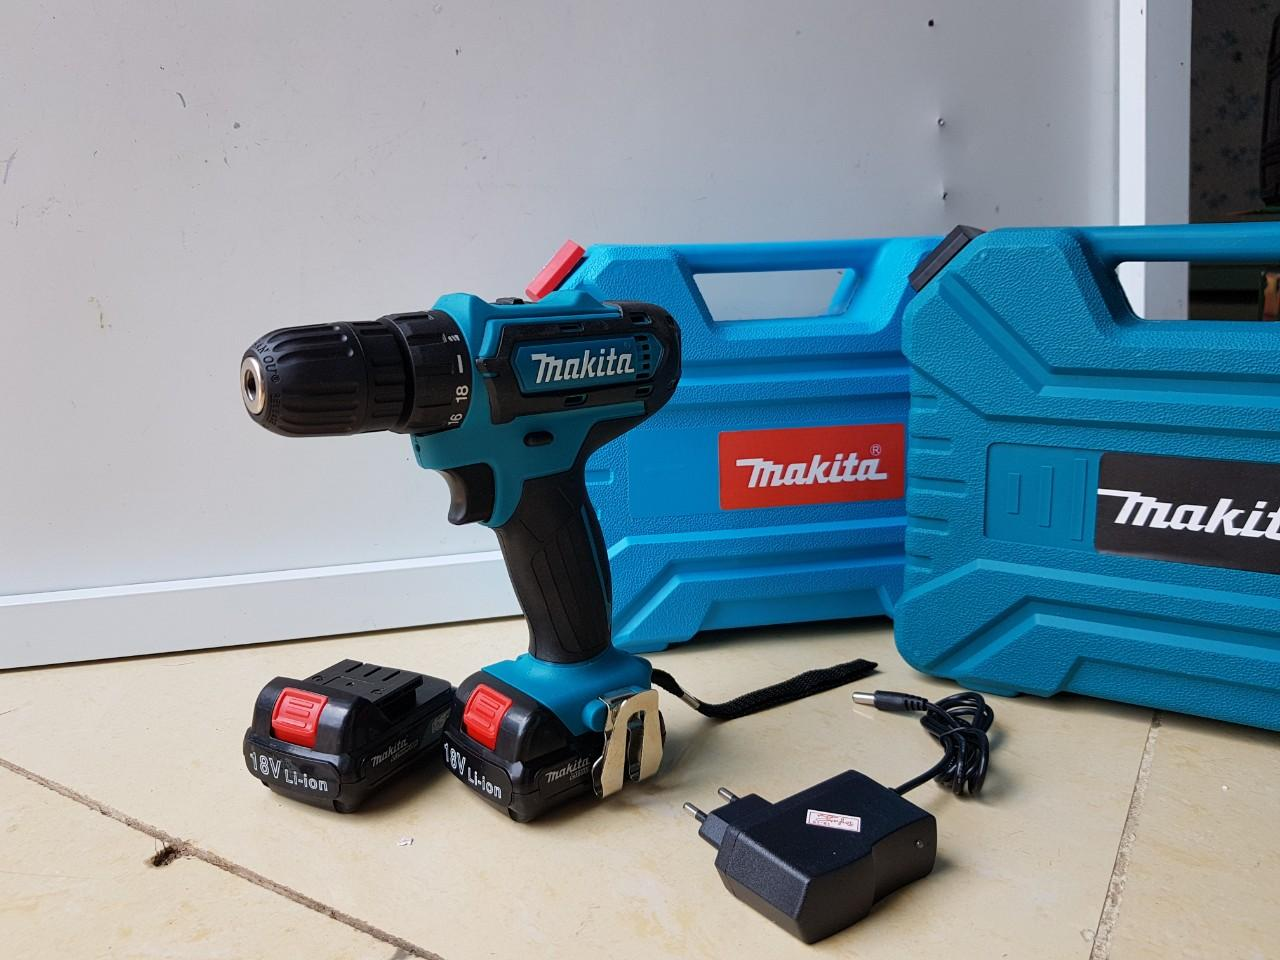 khoan pin makita 18v(2 pin)